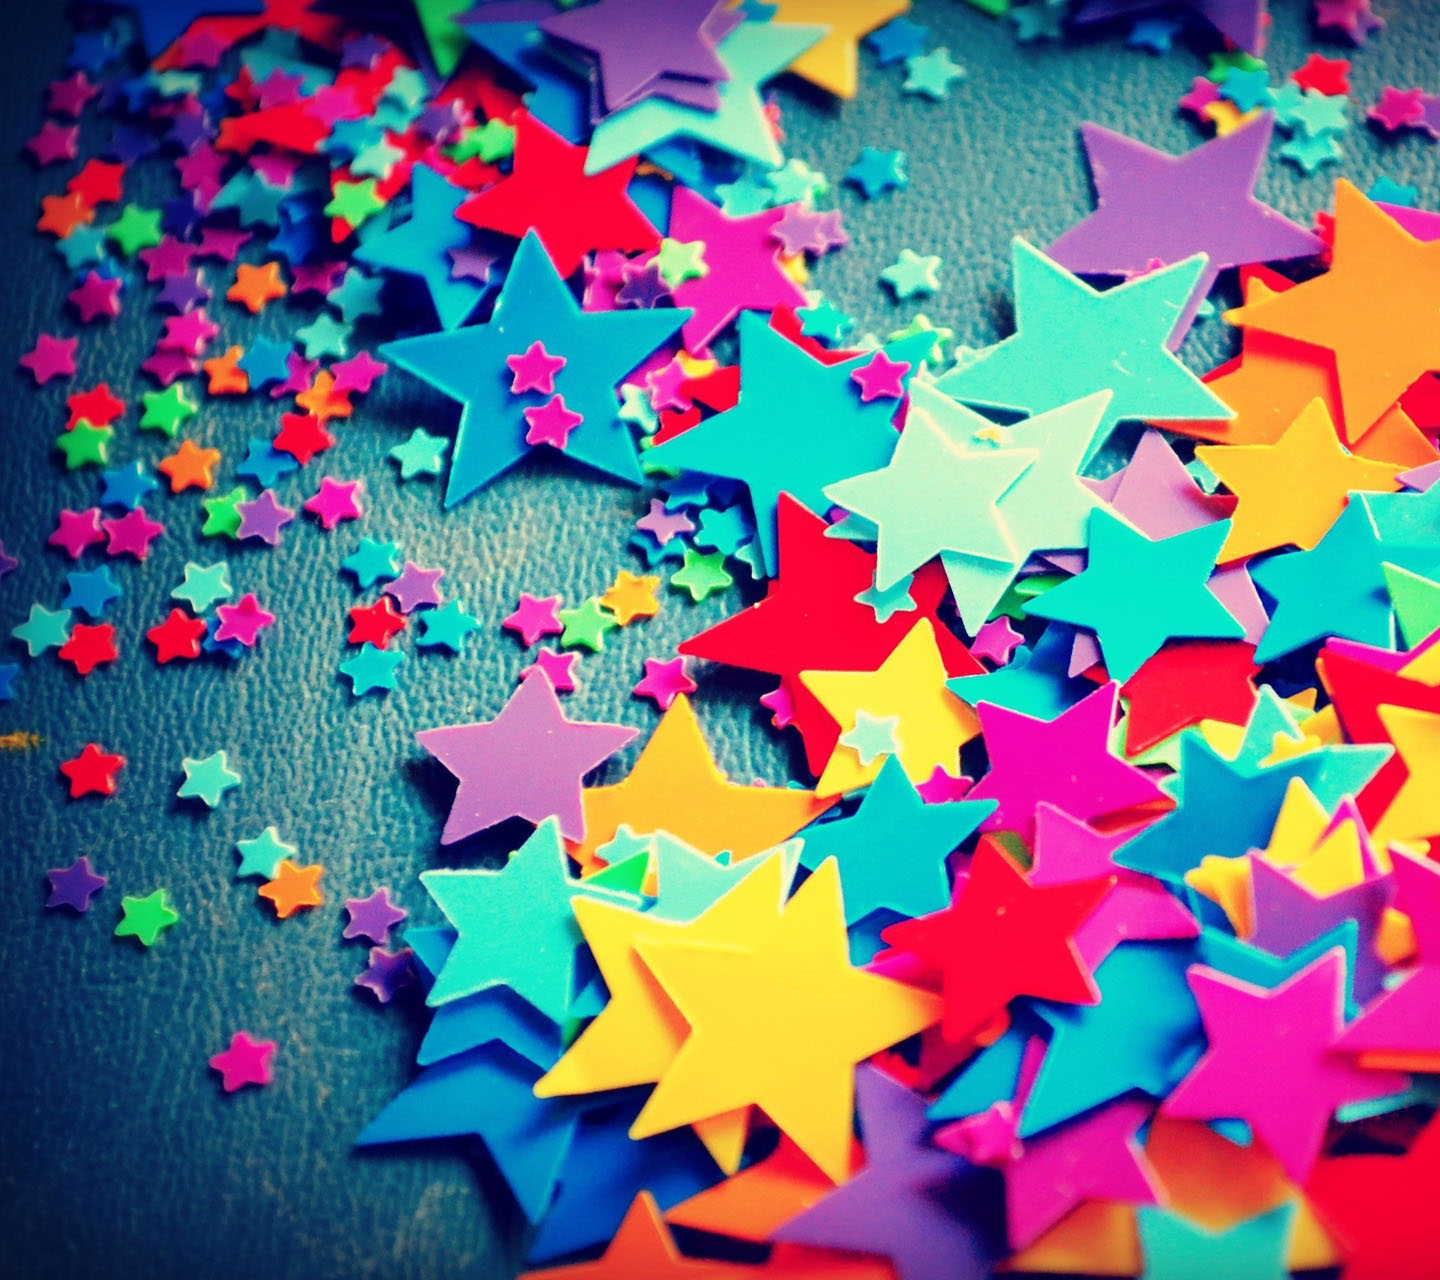 Galaxy S3 Wallpaper - Colorful Stars - HD Wallpapers